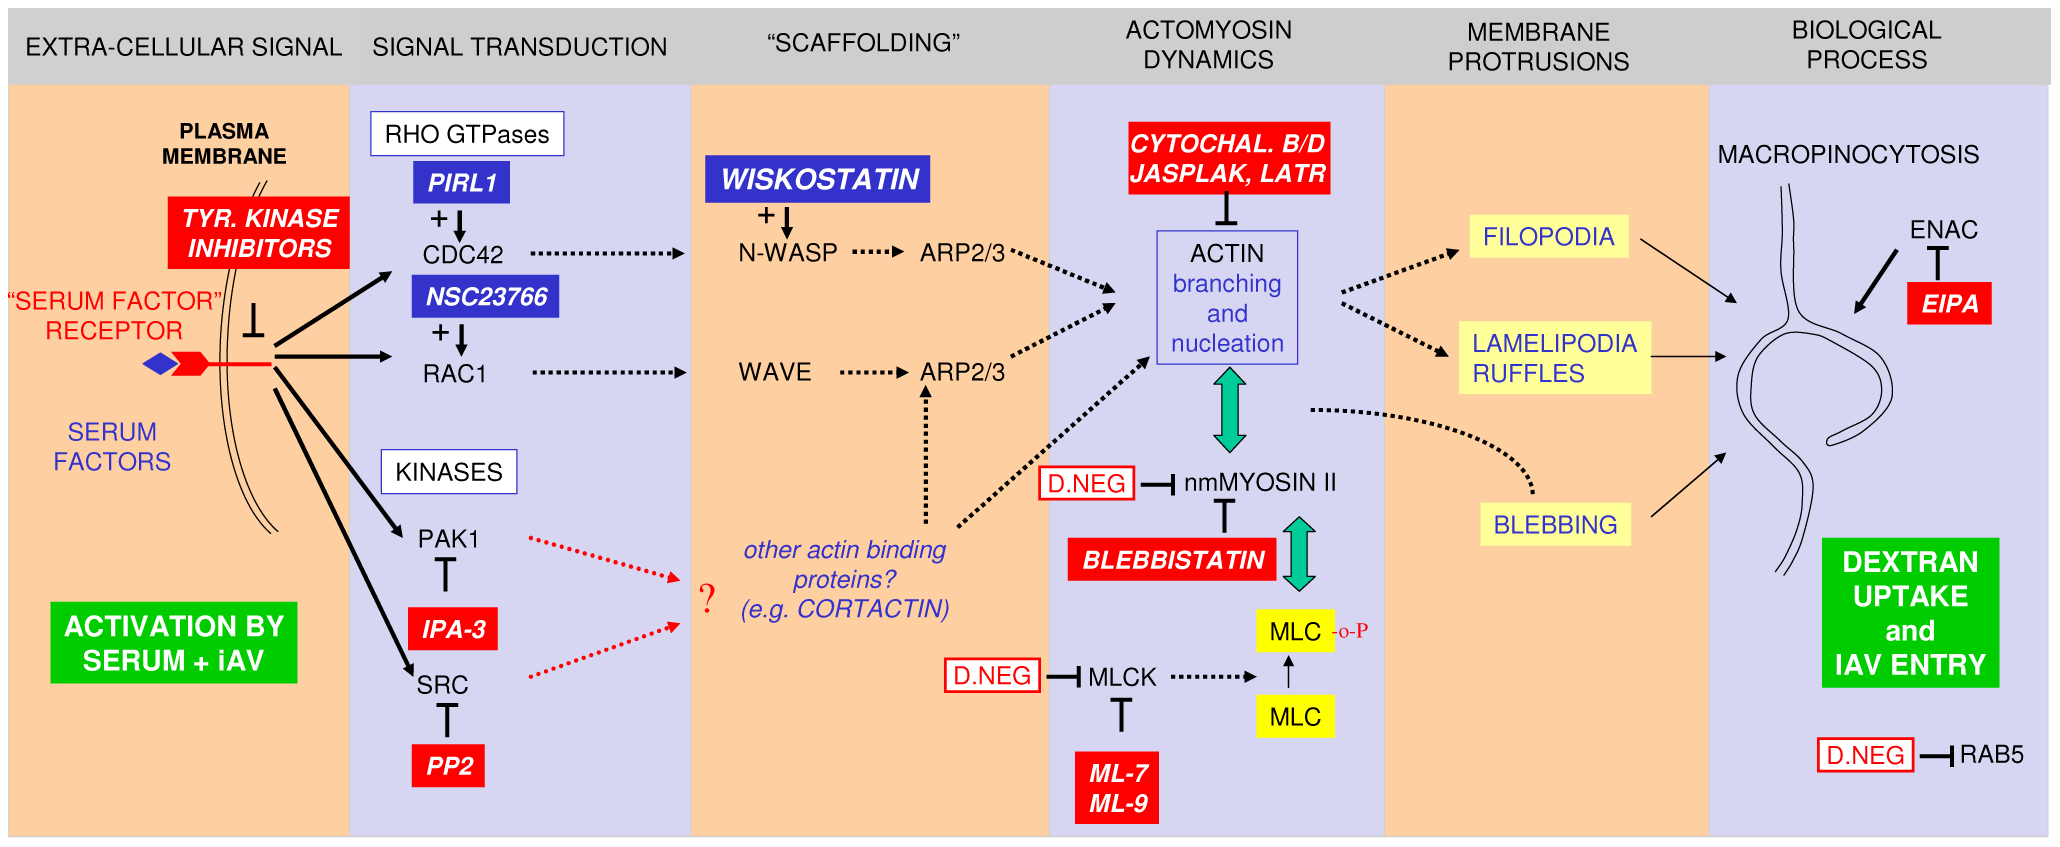 A model for IAV entry by macropinocytosis.